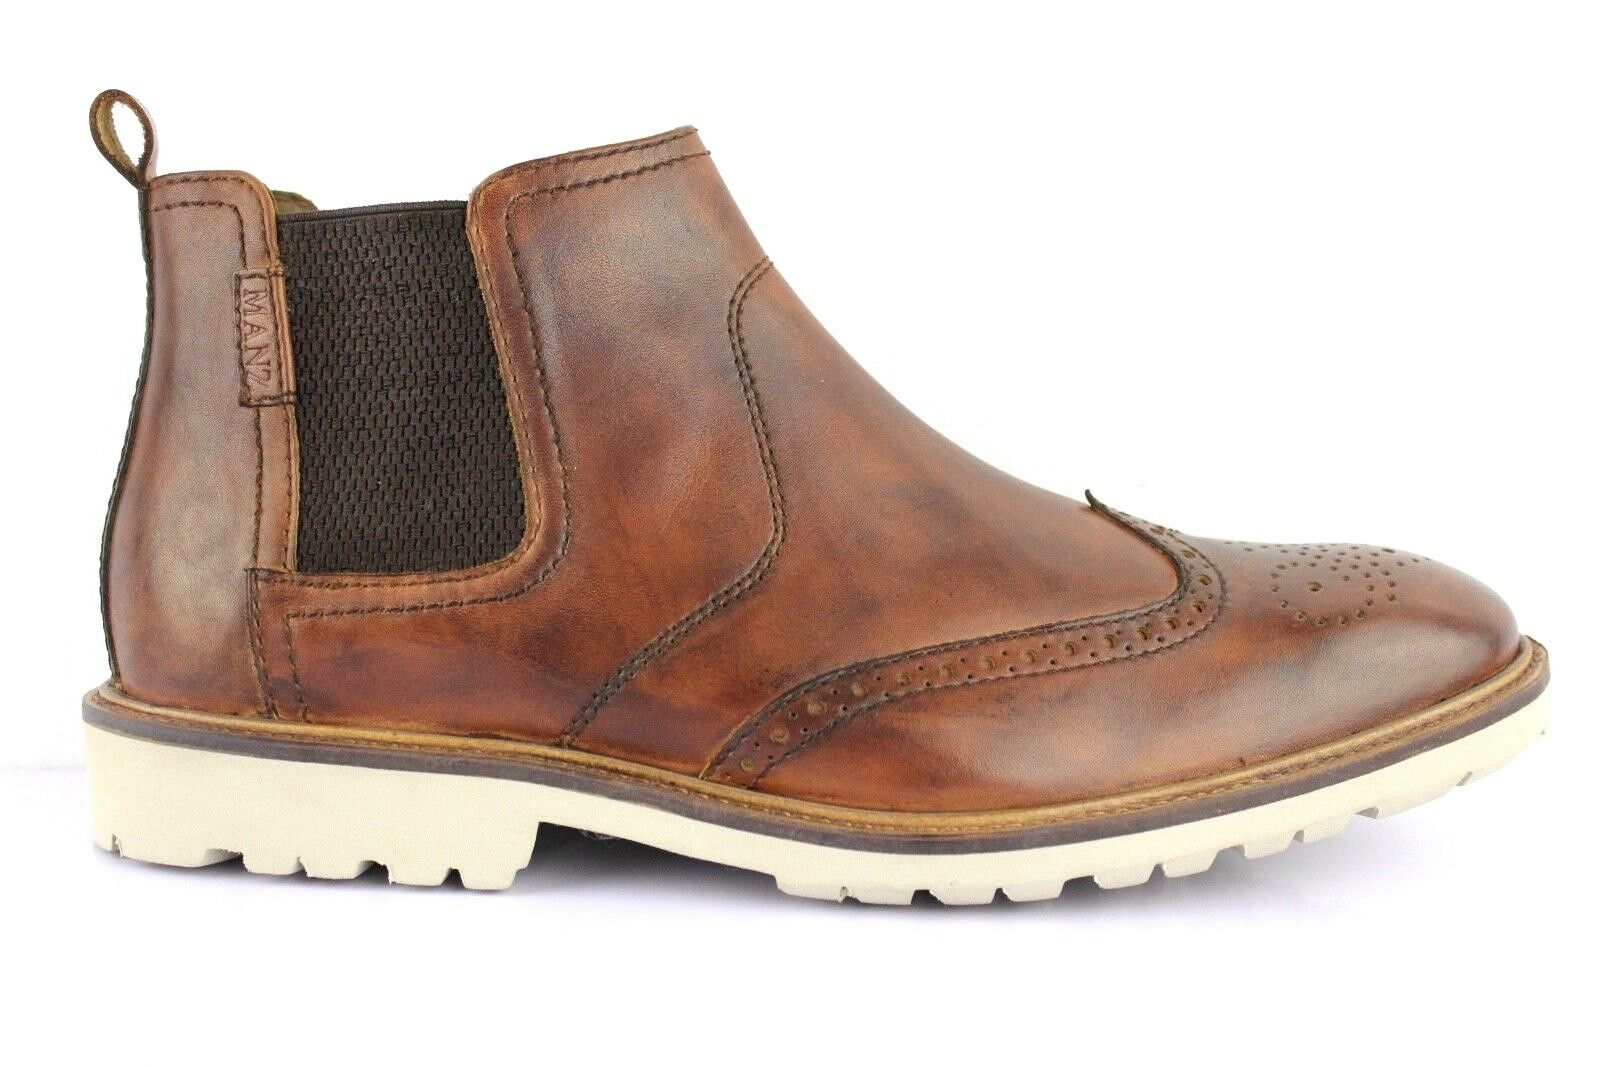 Manz Men's Chelsea Boots Ankle Leather Firenze 146057-03 Brown